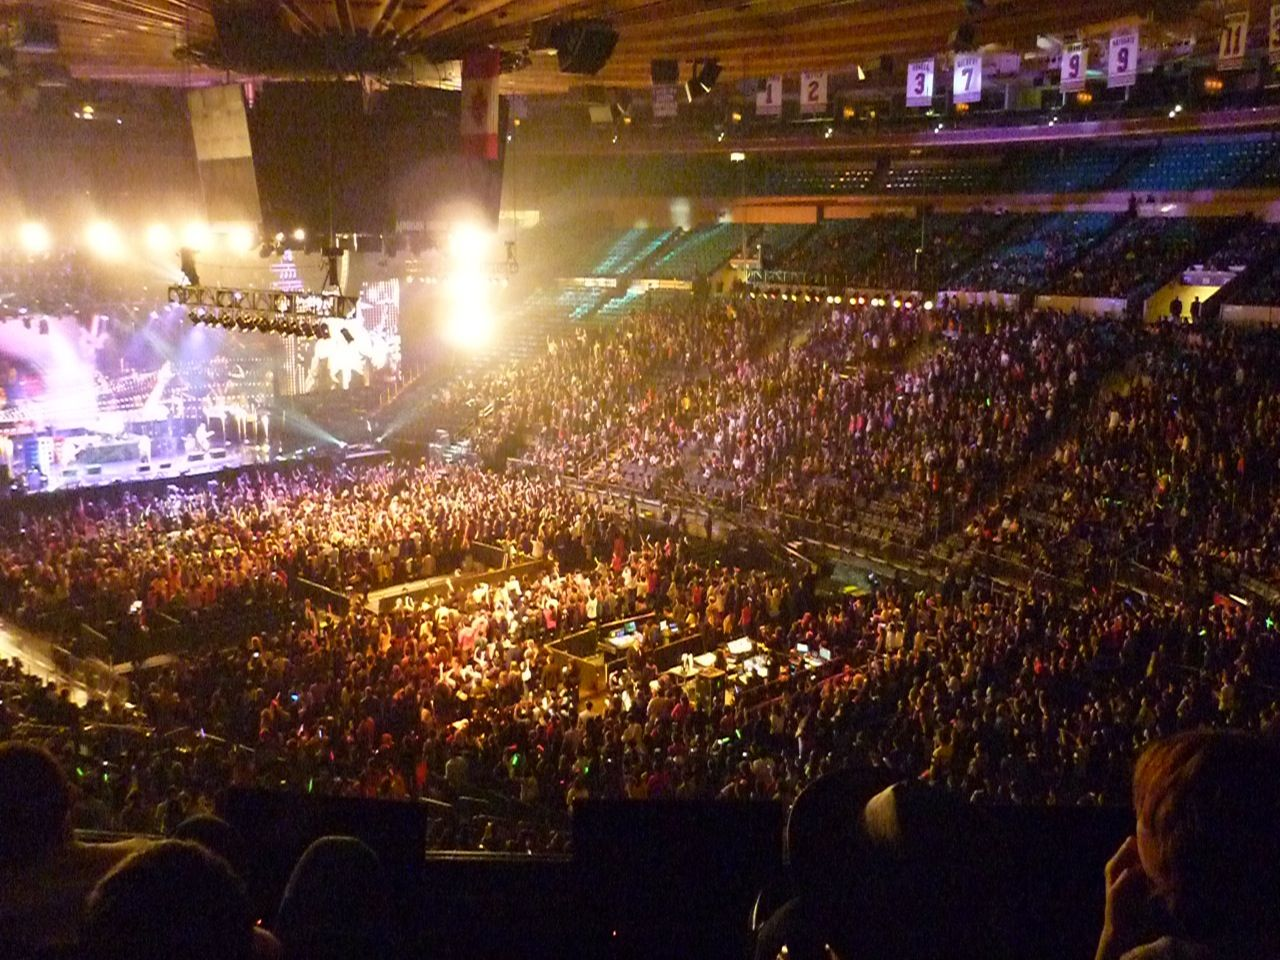 Madison Square Garden Archives - TiqIQ Blog Your Live Event ...